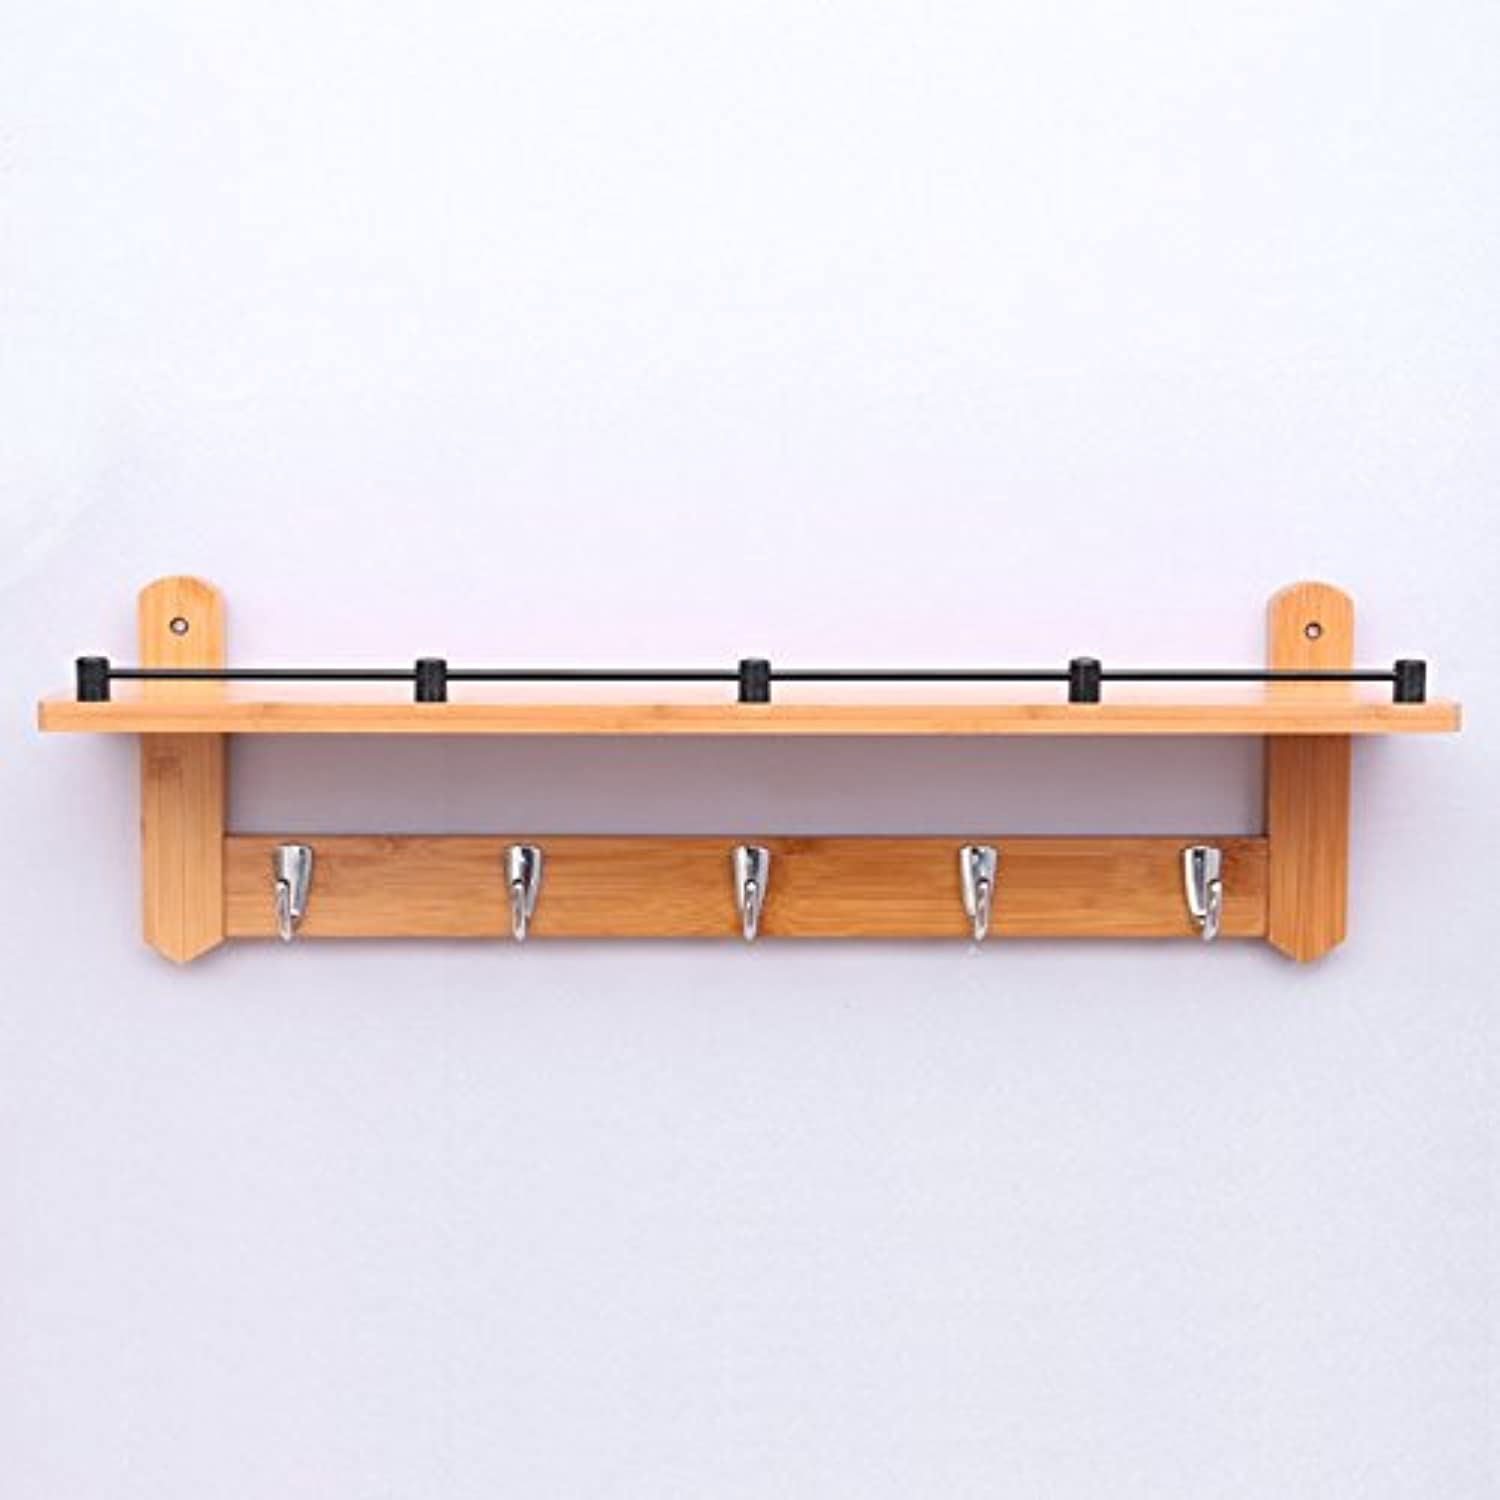 Wall Mounted Coat Rack, Wall-Hung Coat Hooks,Bedroom Living Room Entrance Simple Modern Bamboo System Wall-Mounted Coat Racks. (Size   66  20  12cm)